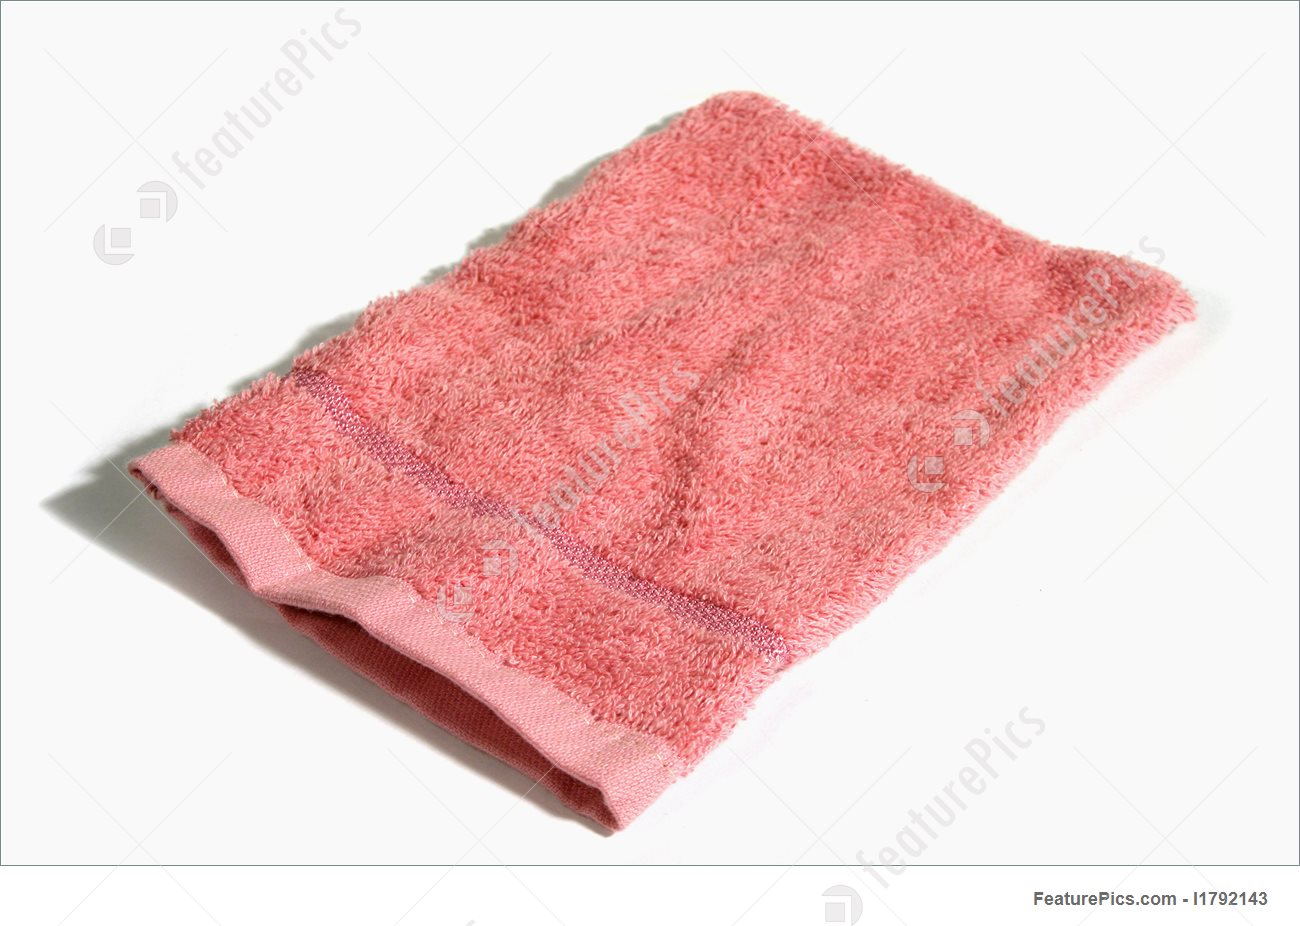 Washcloth clipart 8 » Clipart Station.